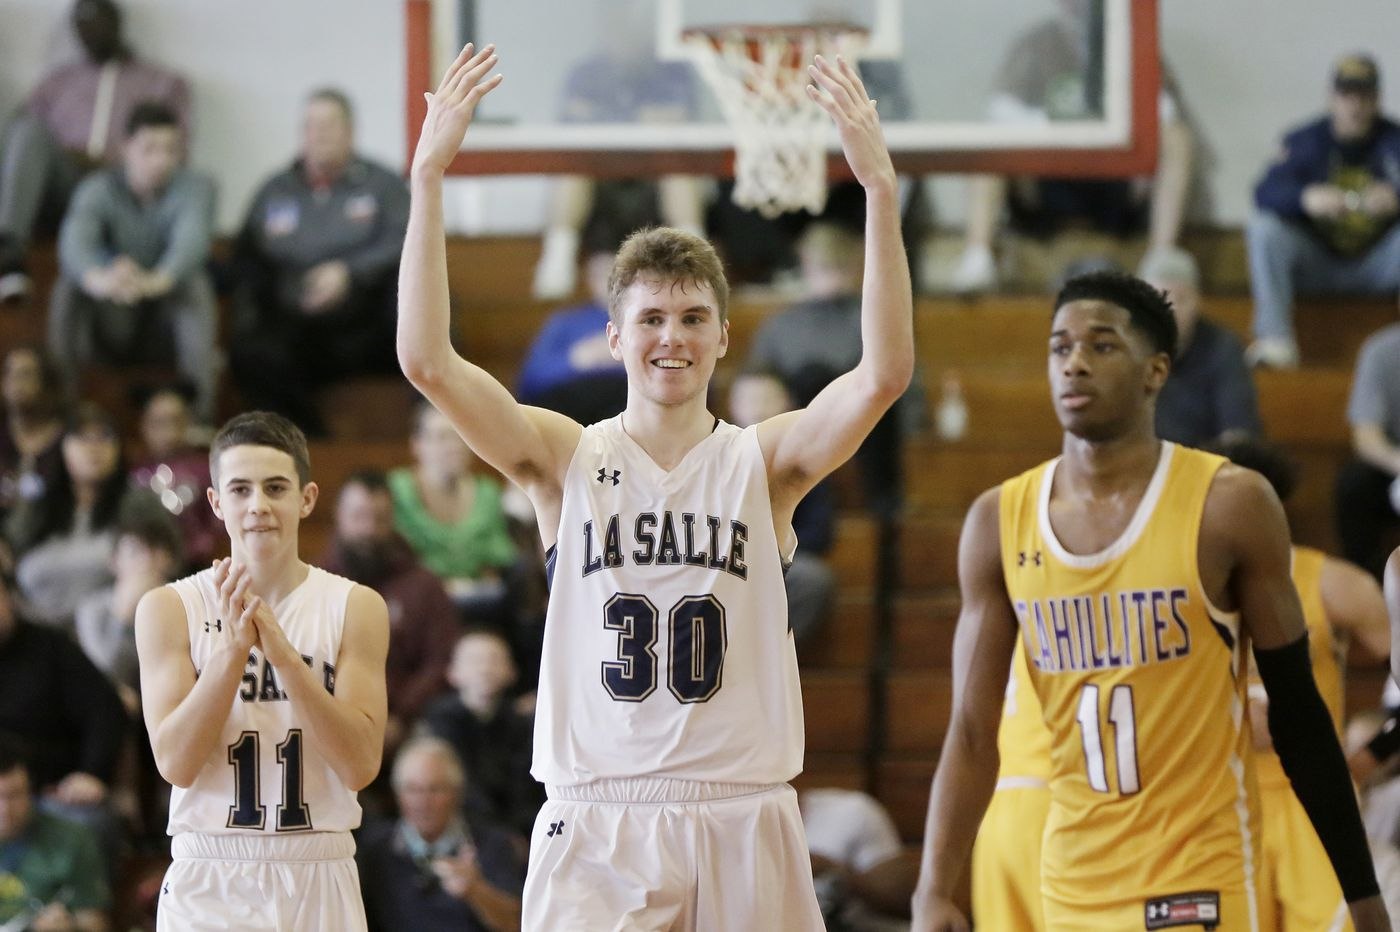 PIAA Class 6A playoffs: La Salle knocks off Roman Catholic, will play Pennridge in semifinal on Tuesday